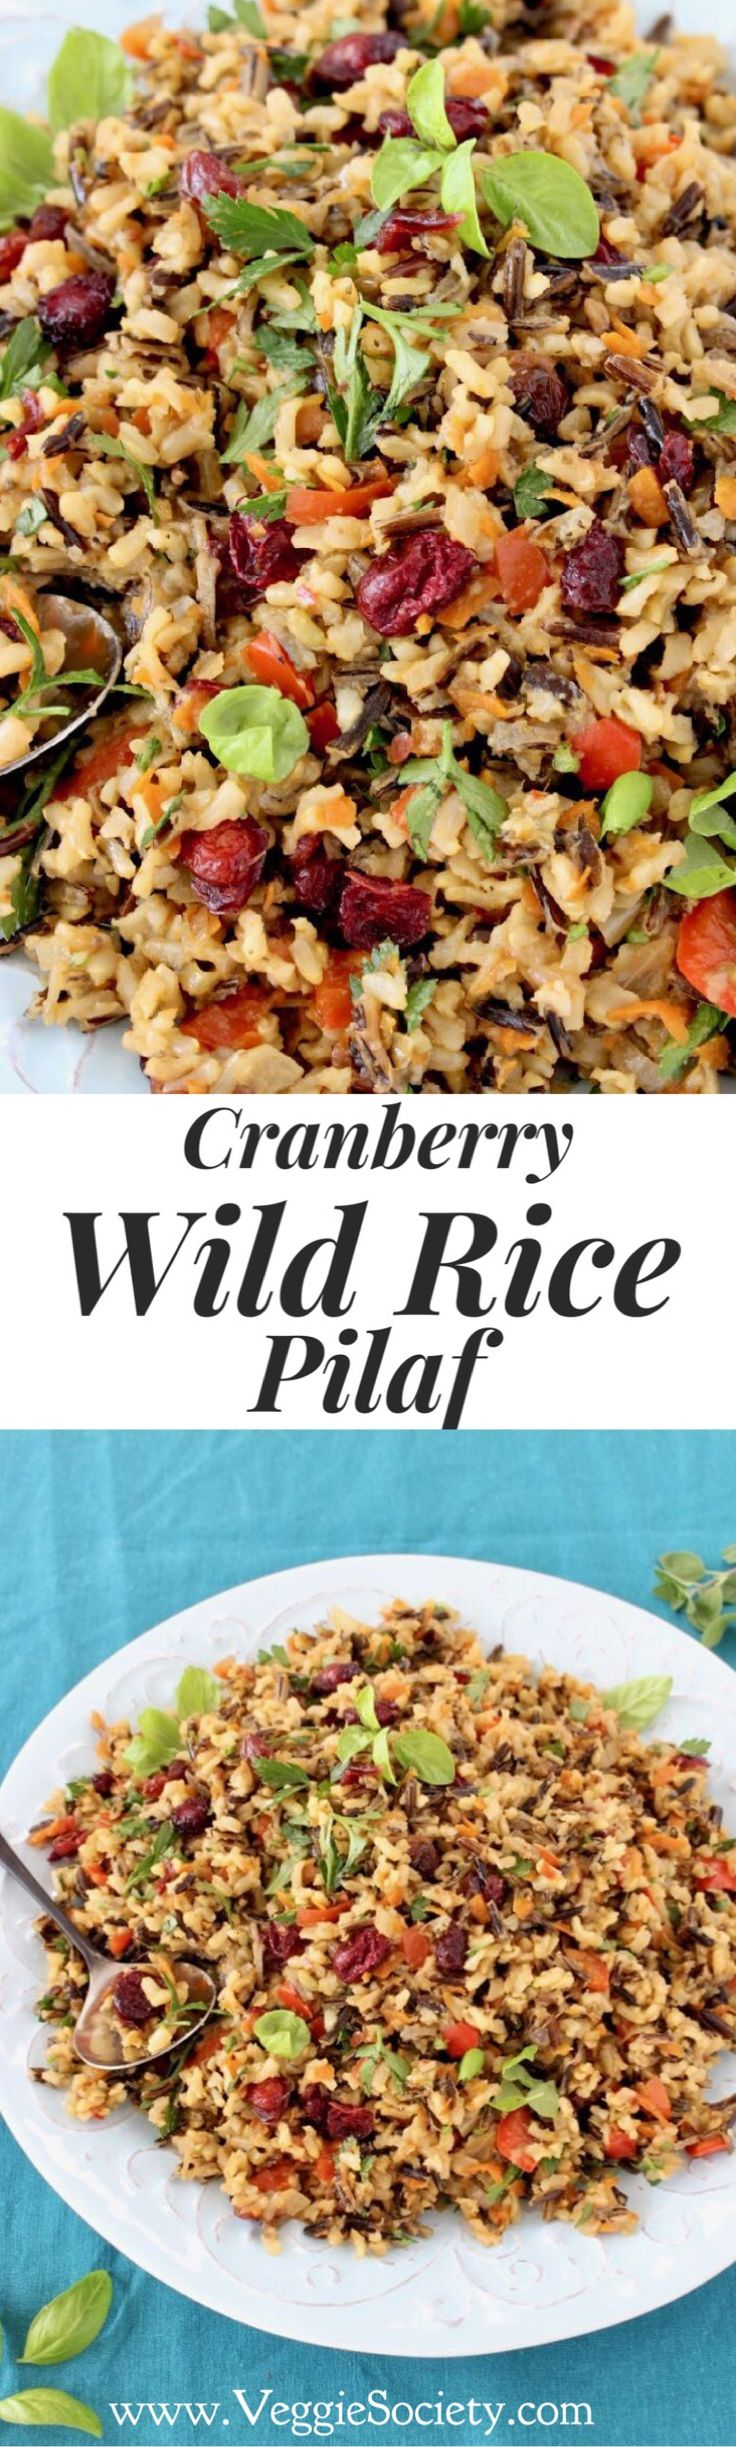 Cranberry Wild Recipe Pilaf Recipe Made with a mix of brown basmati and black rice. Healthy, easy, vegan and gluten free | CiaoFlorentina.com @CiaoFlorentina